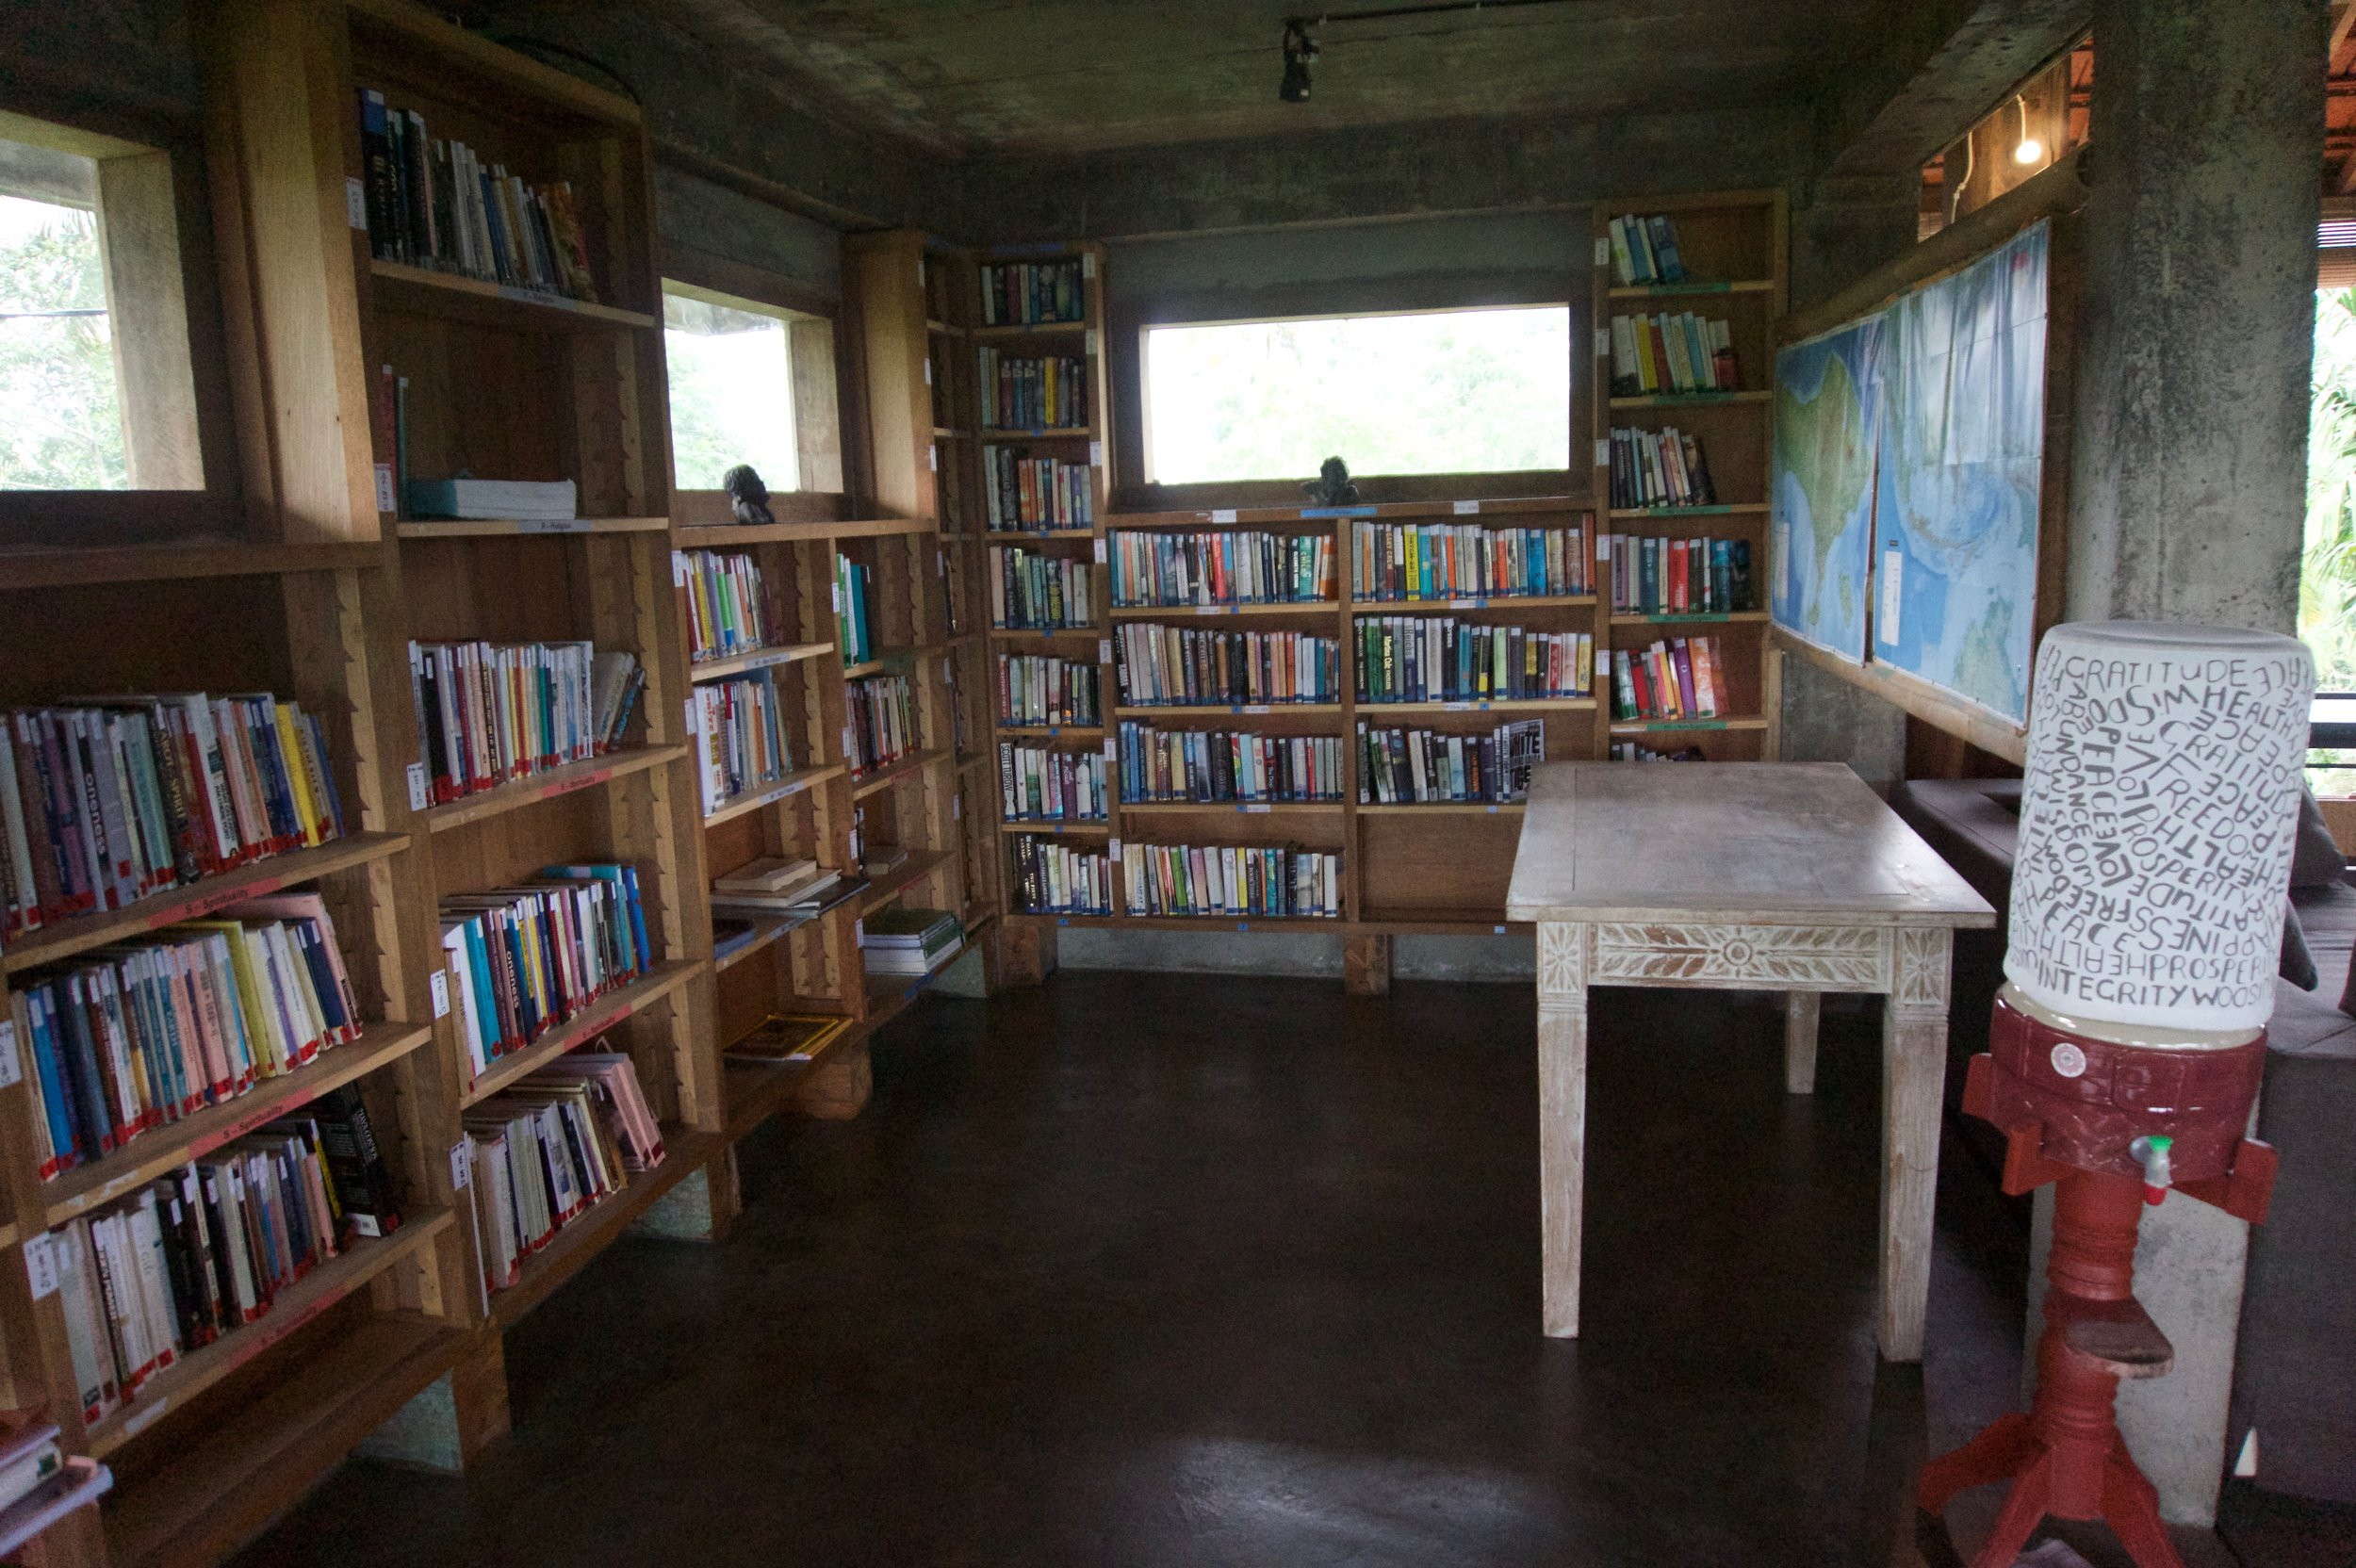 Our library full of inspiration and guidance.